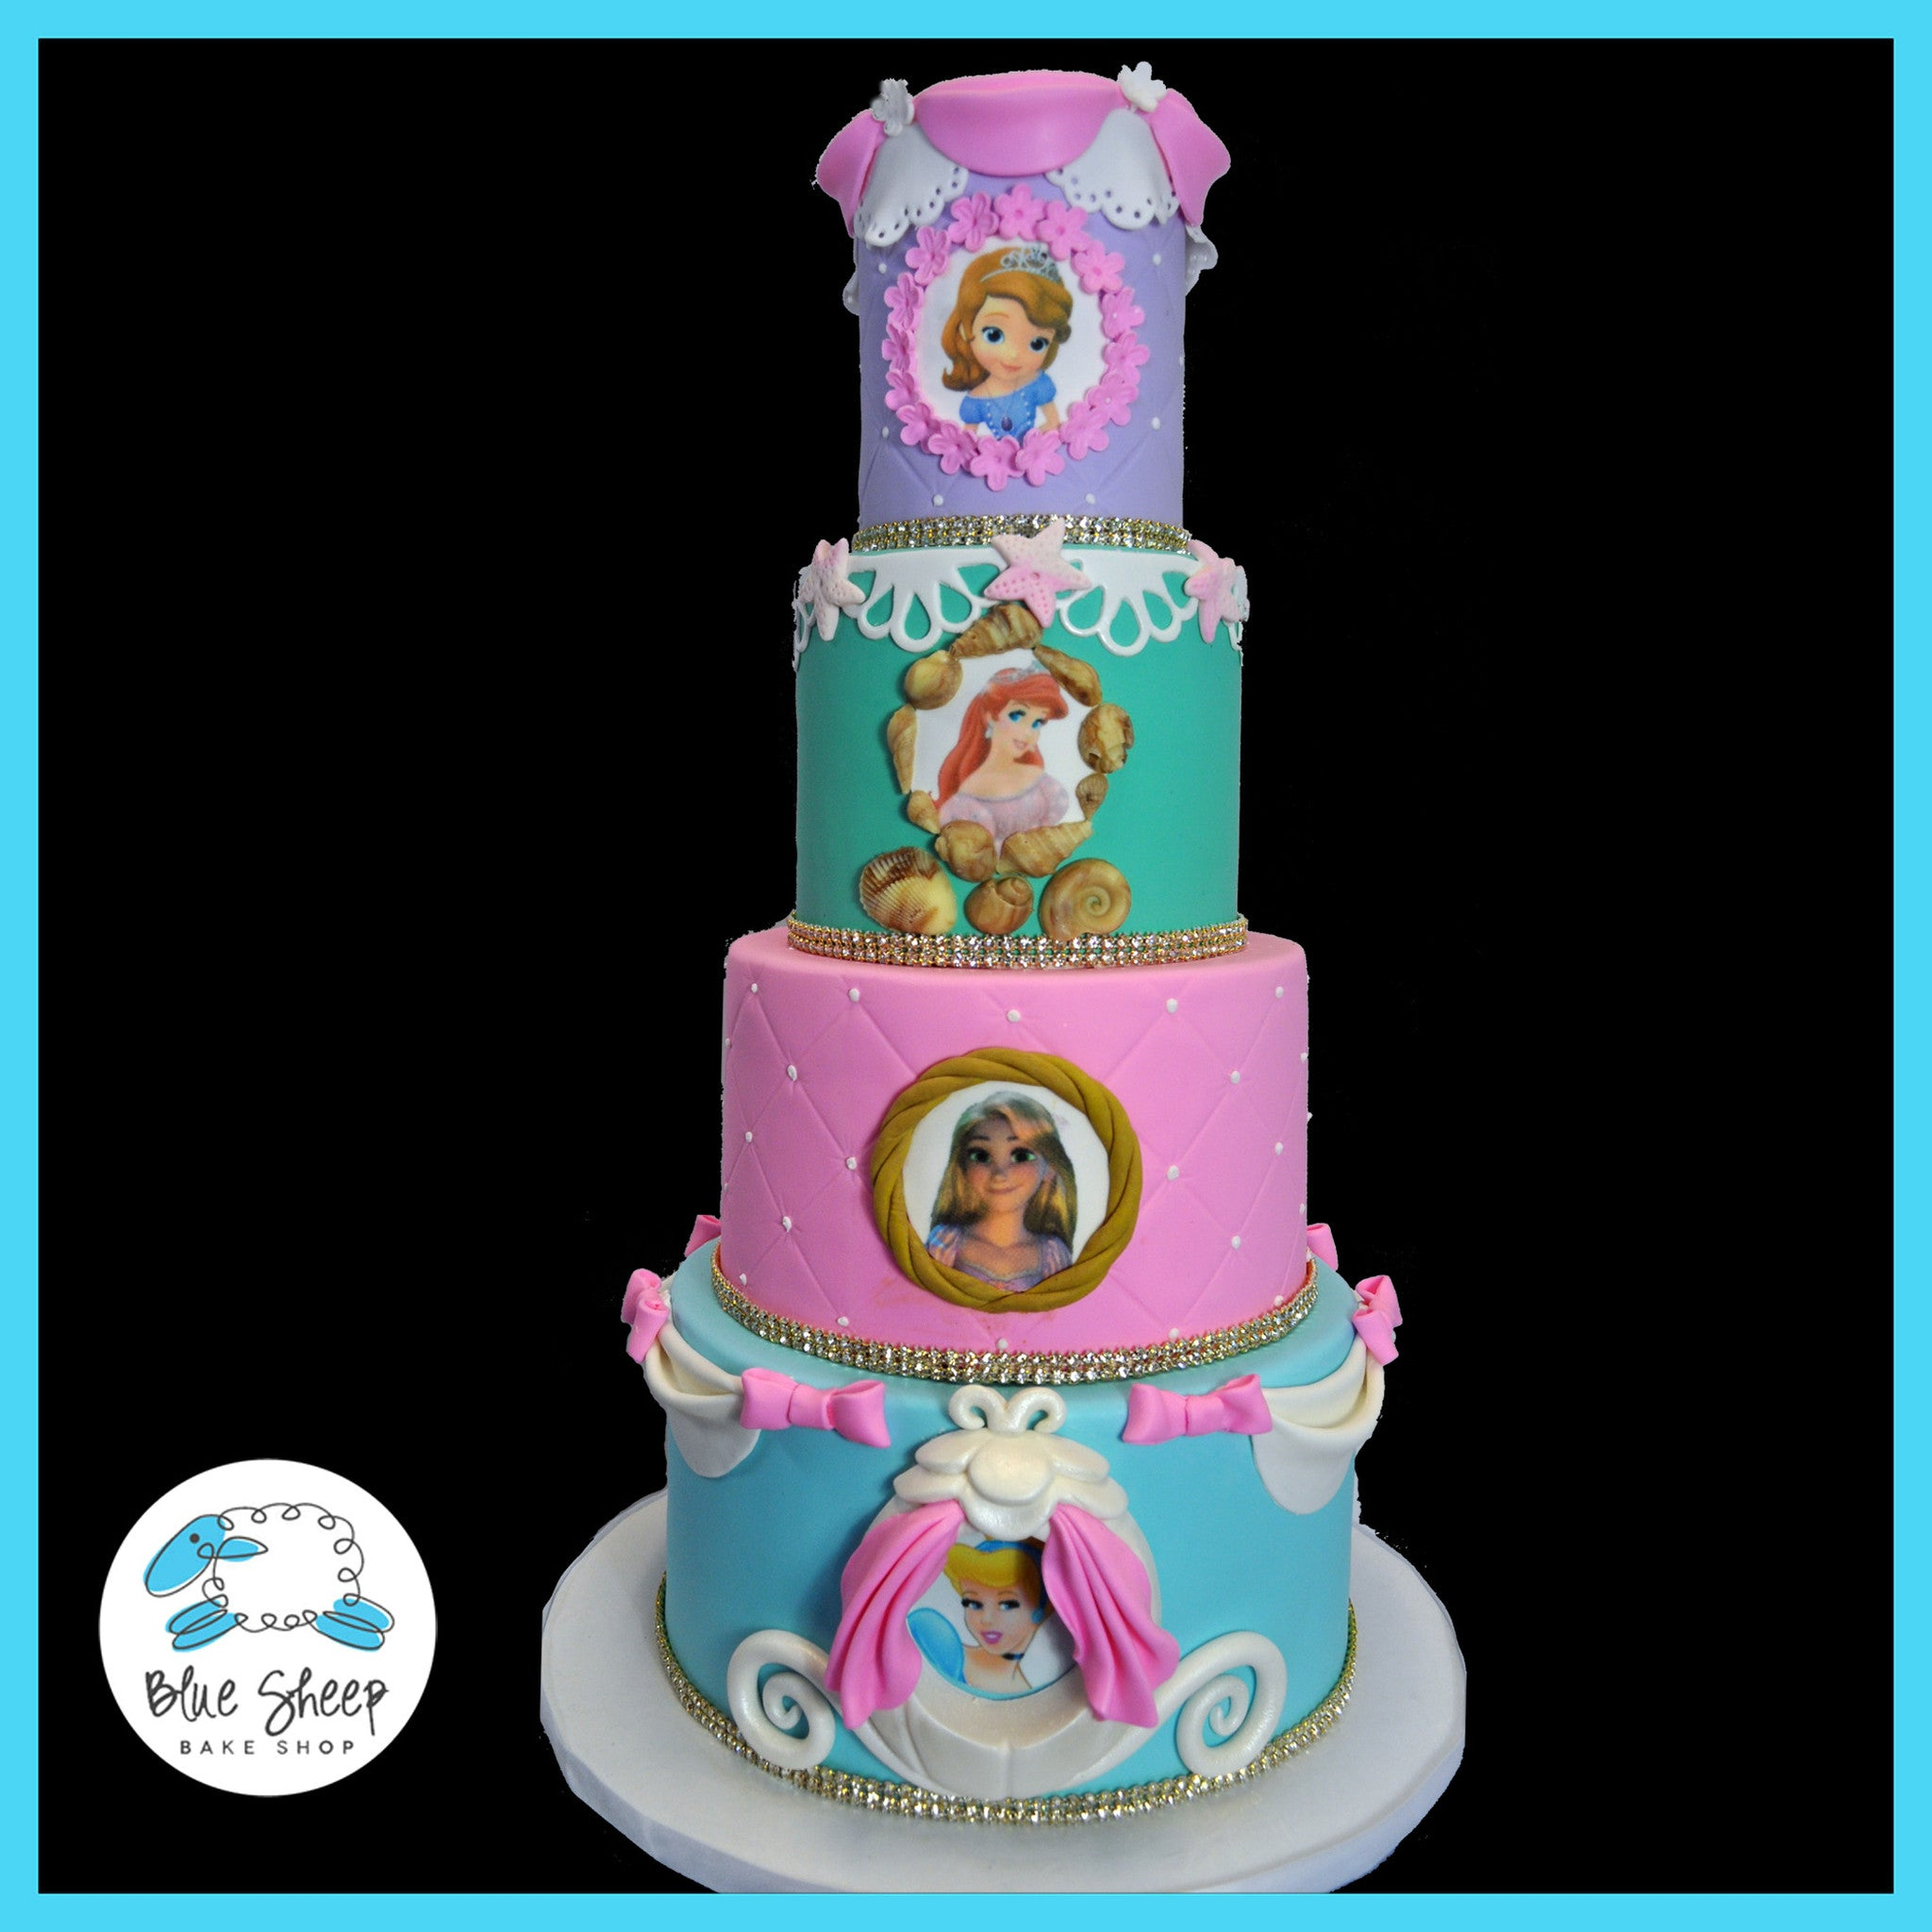 Princess Birthday Cake Blue Sheep Bake Shop